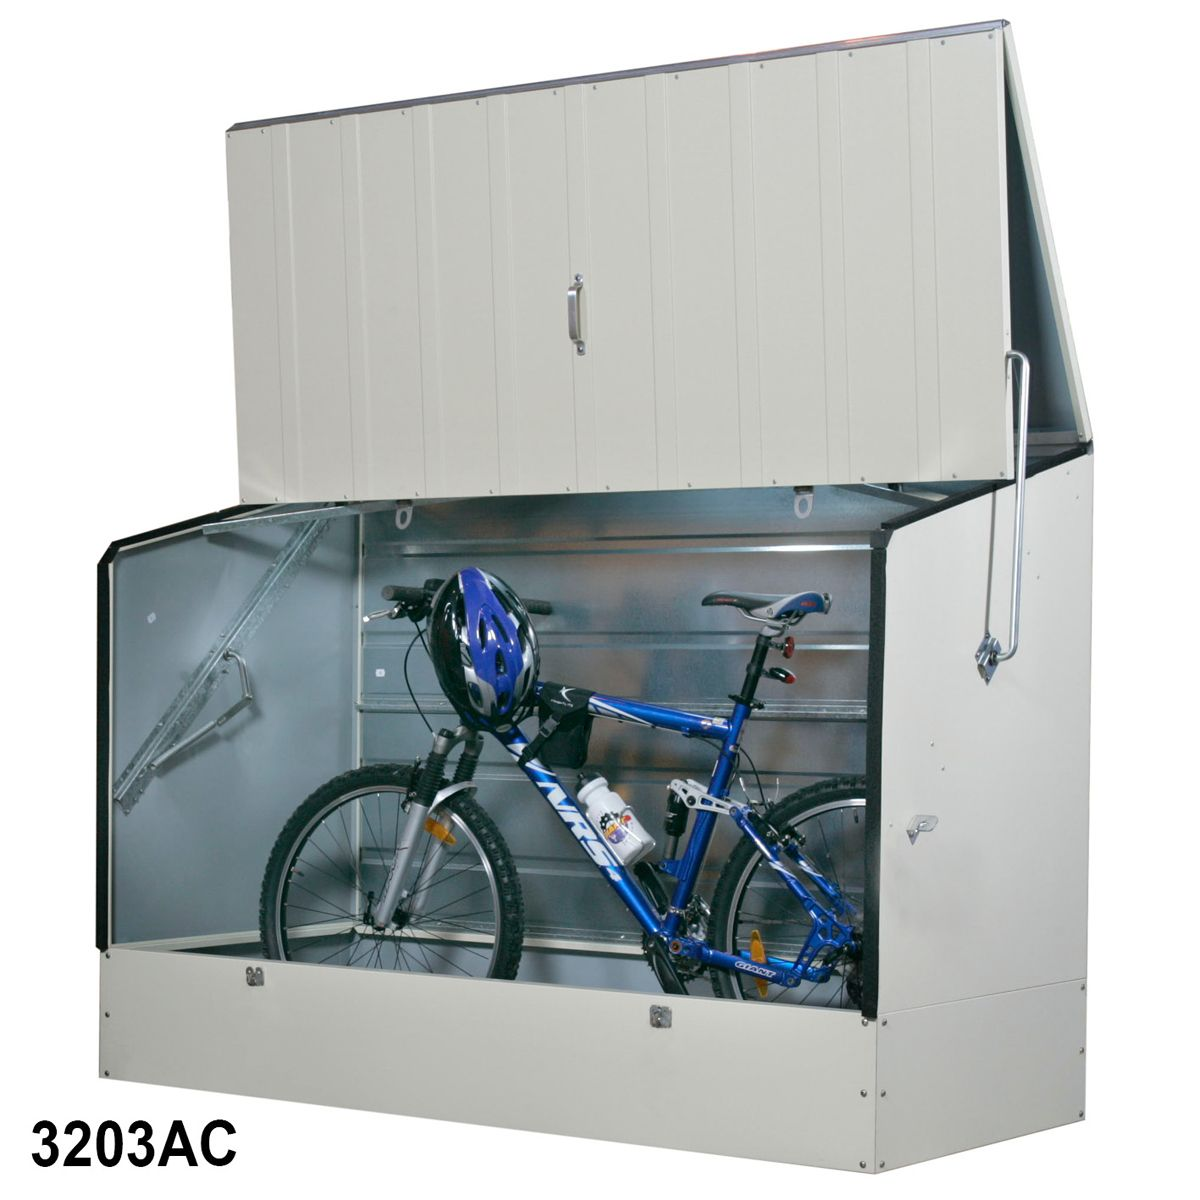 Storage Shed Storage Shed For Bicycle